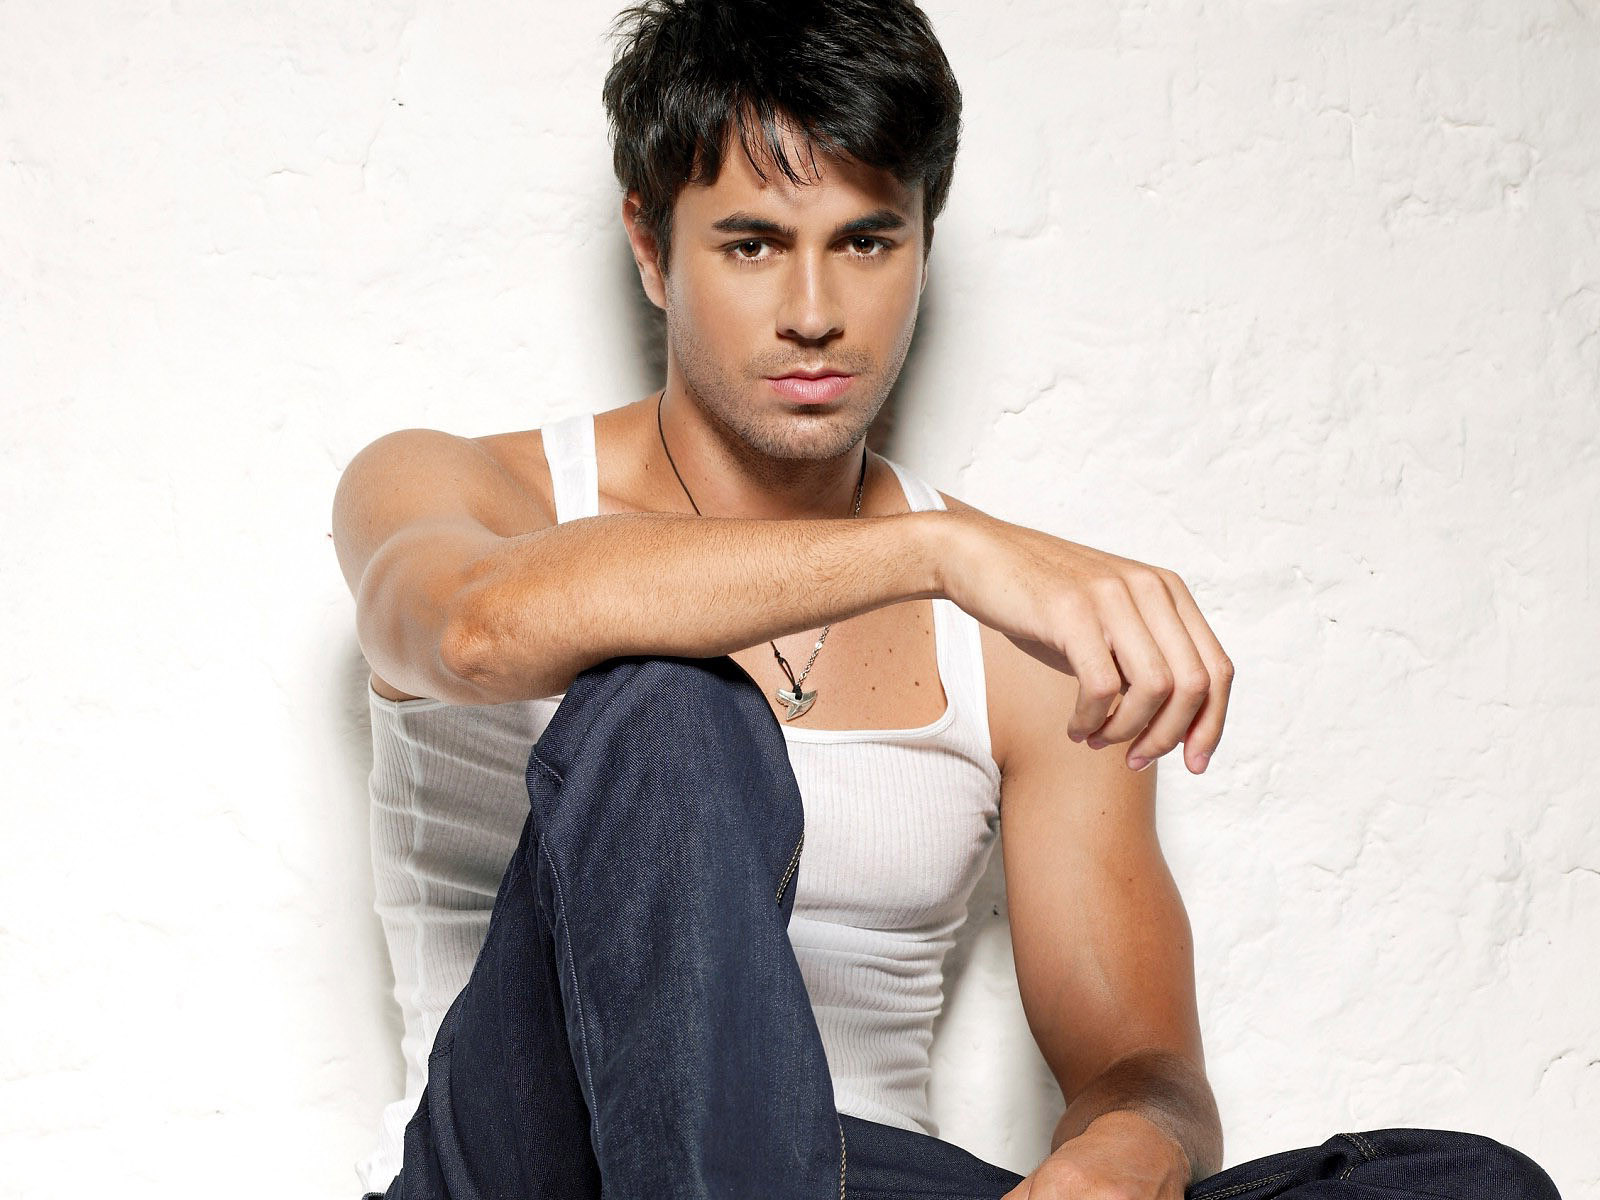 http://1.bp.blogspot.com/-zw1sMcKkQXk/TuXGjbVS7hI/AAAAAAAAAmA/FGRiylcutk0/s1600/Enrique-Iglesias-pictures-desktop-Wallpapers-HD-photo-images-1.jpg